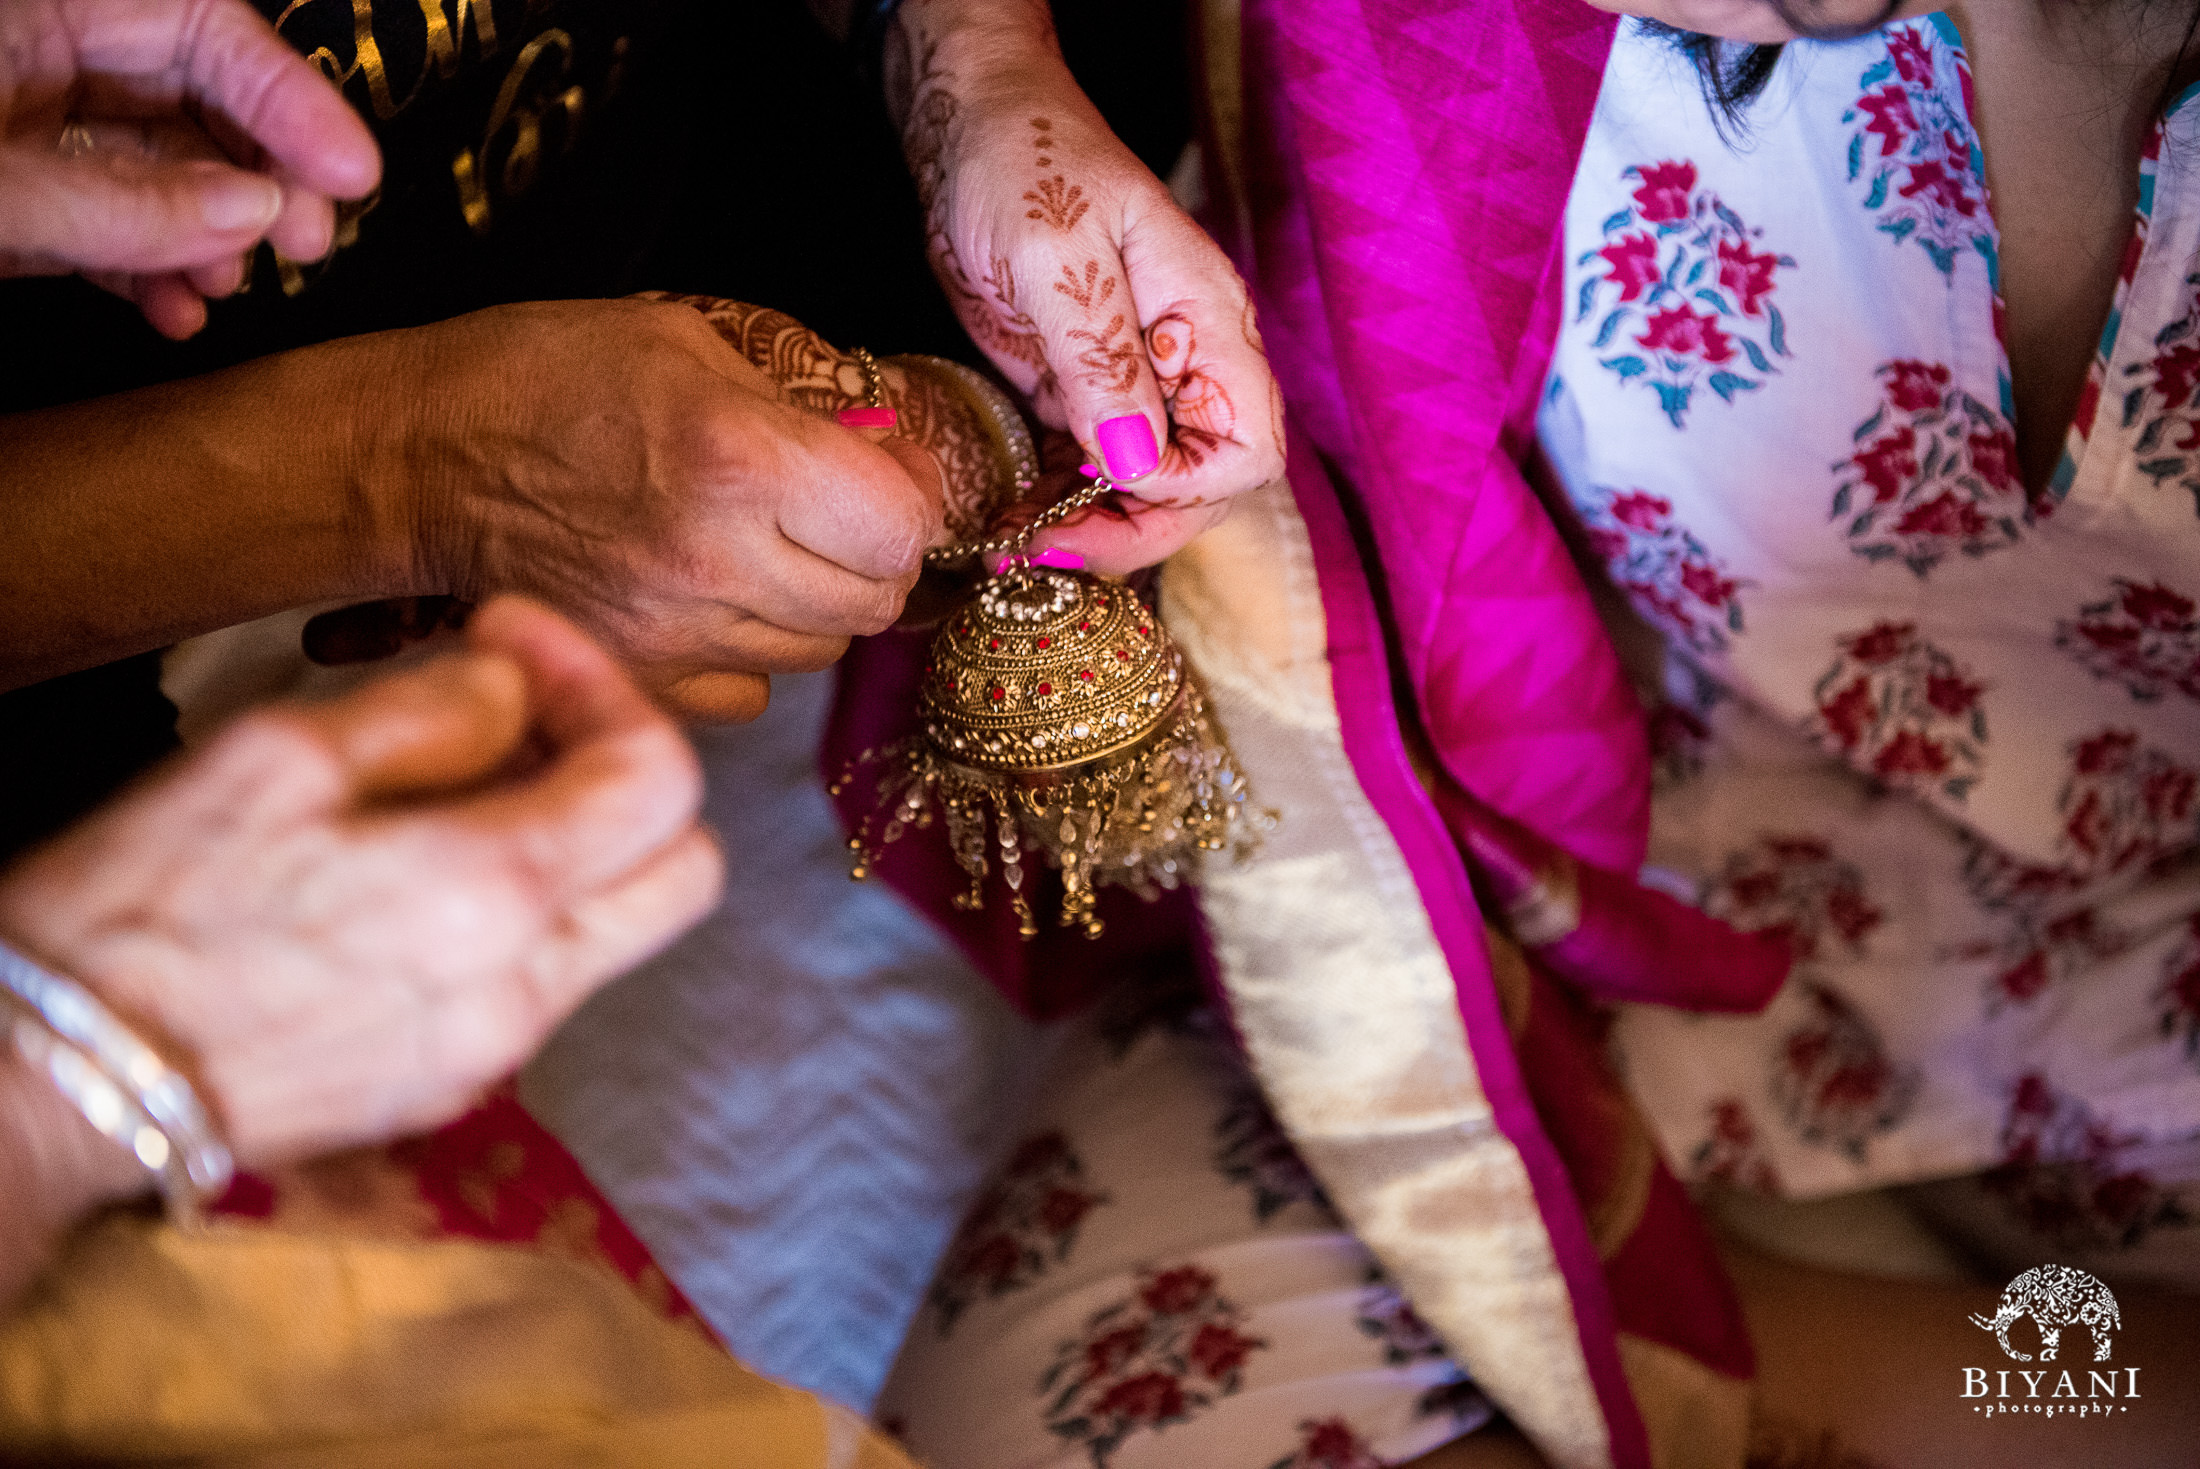 Jewelry for the Indian bride during her Indian Fusion wedding in San Antonio, Tx.